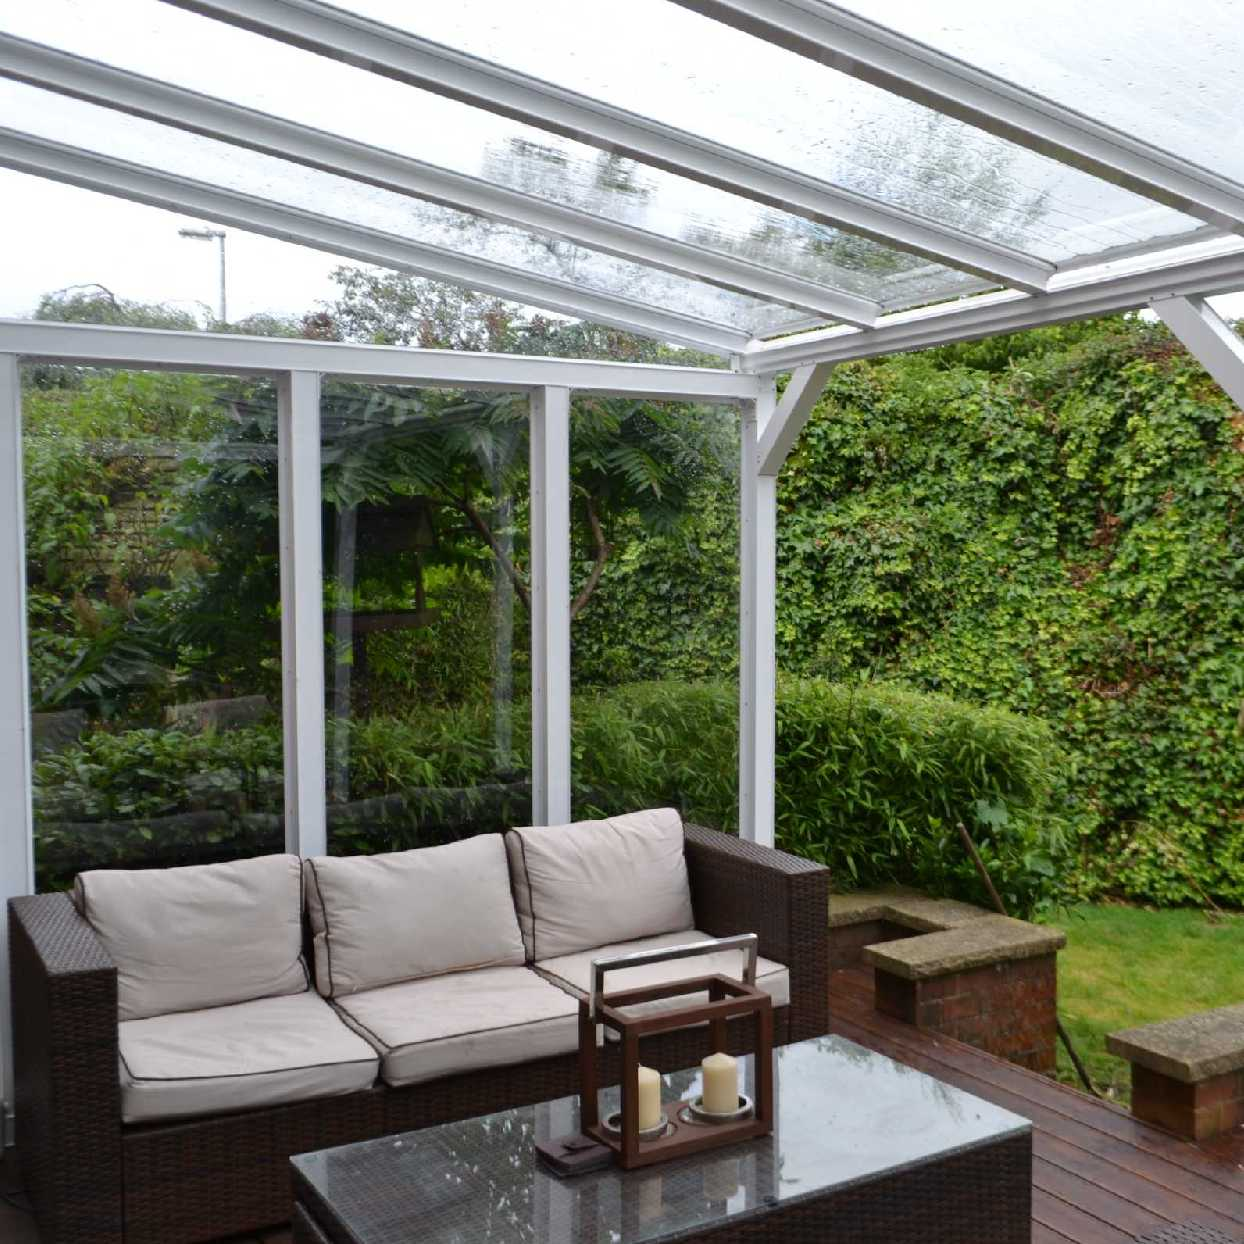 Great selection of Omega Smart White Lean-To Canopy with 16mm Polycarbonate Glazing - 7.4m (W) x 2.0m (P), (4) Supporting Posts